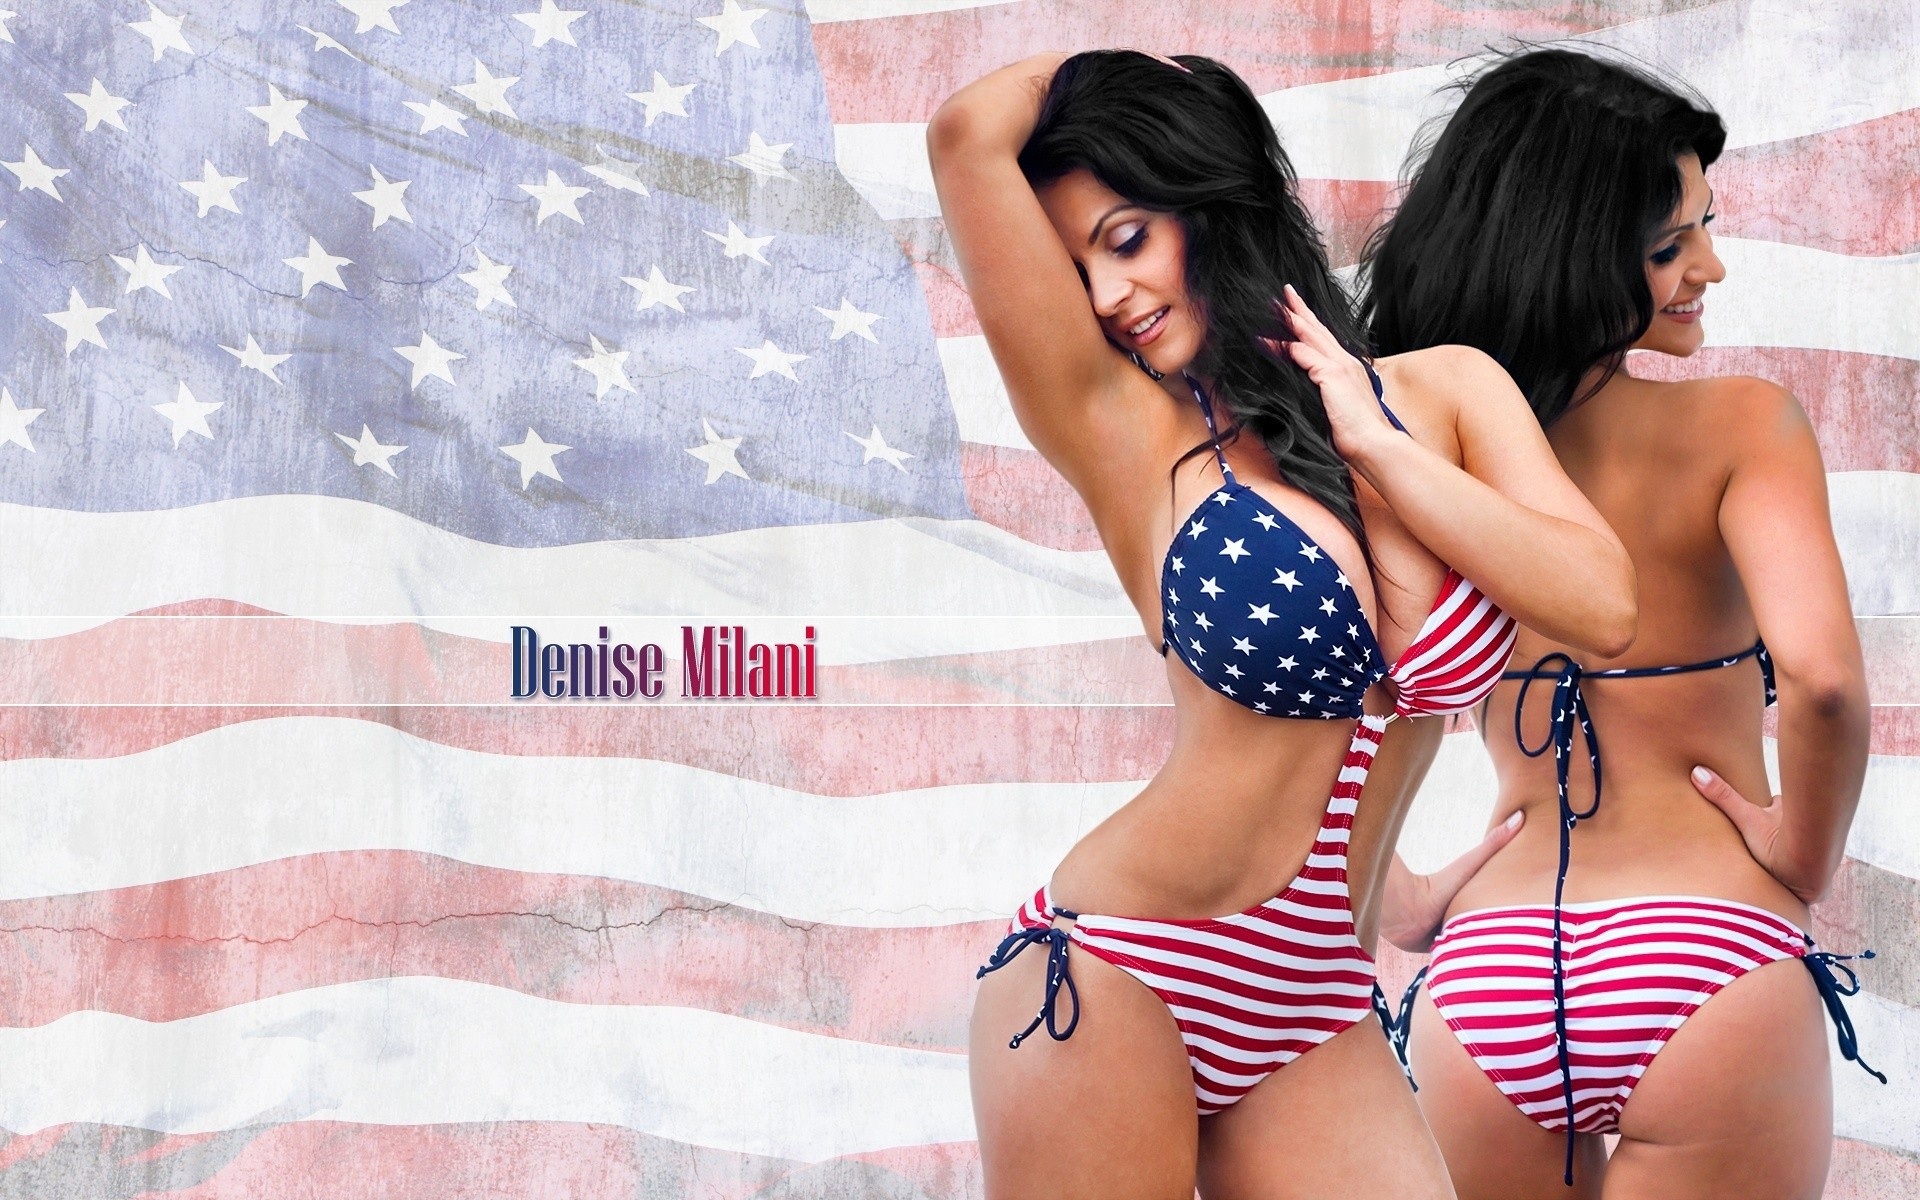 Denise Milani Wallpaper For Computer